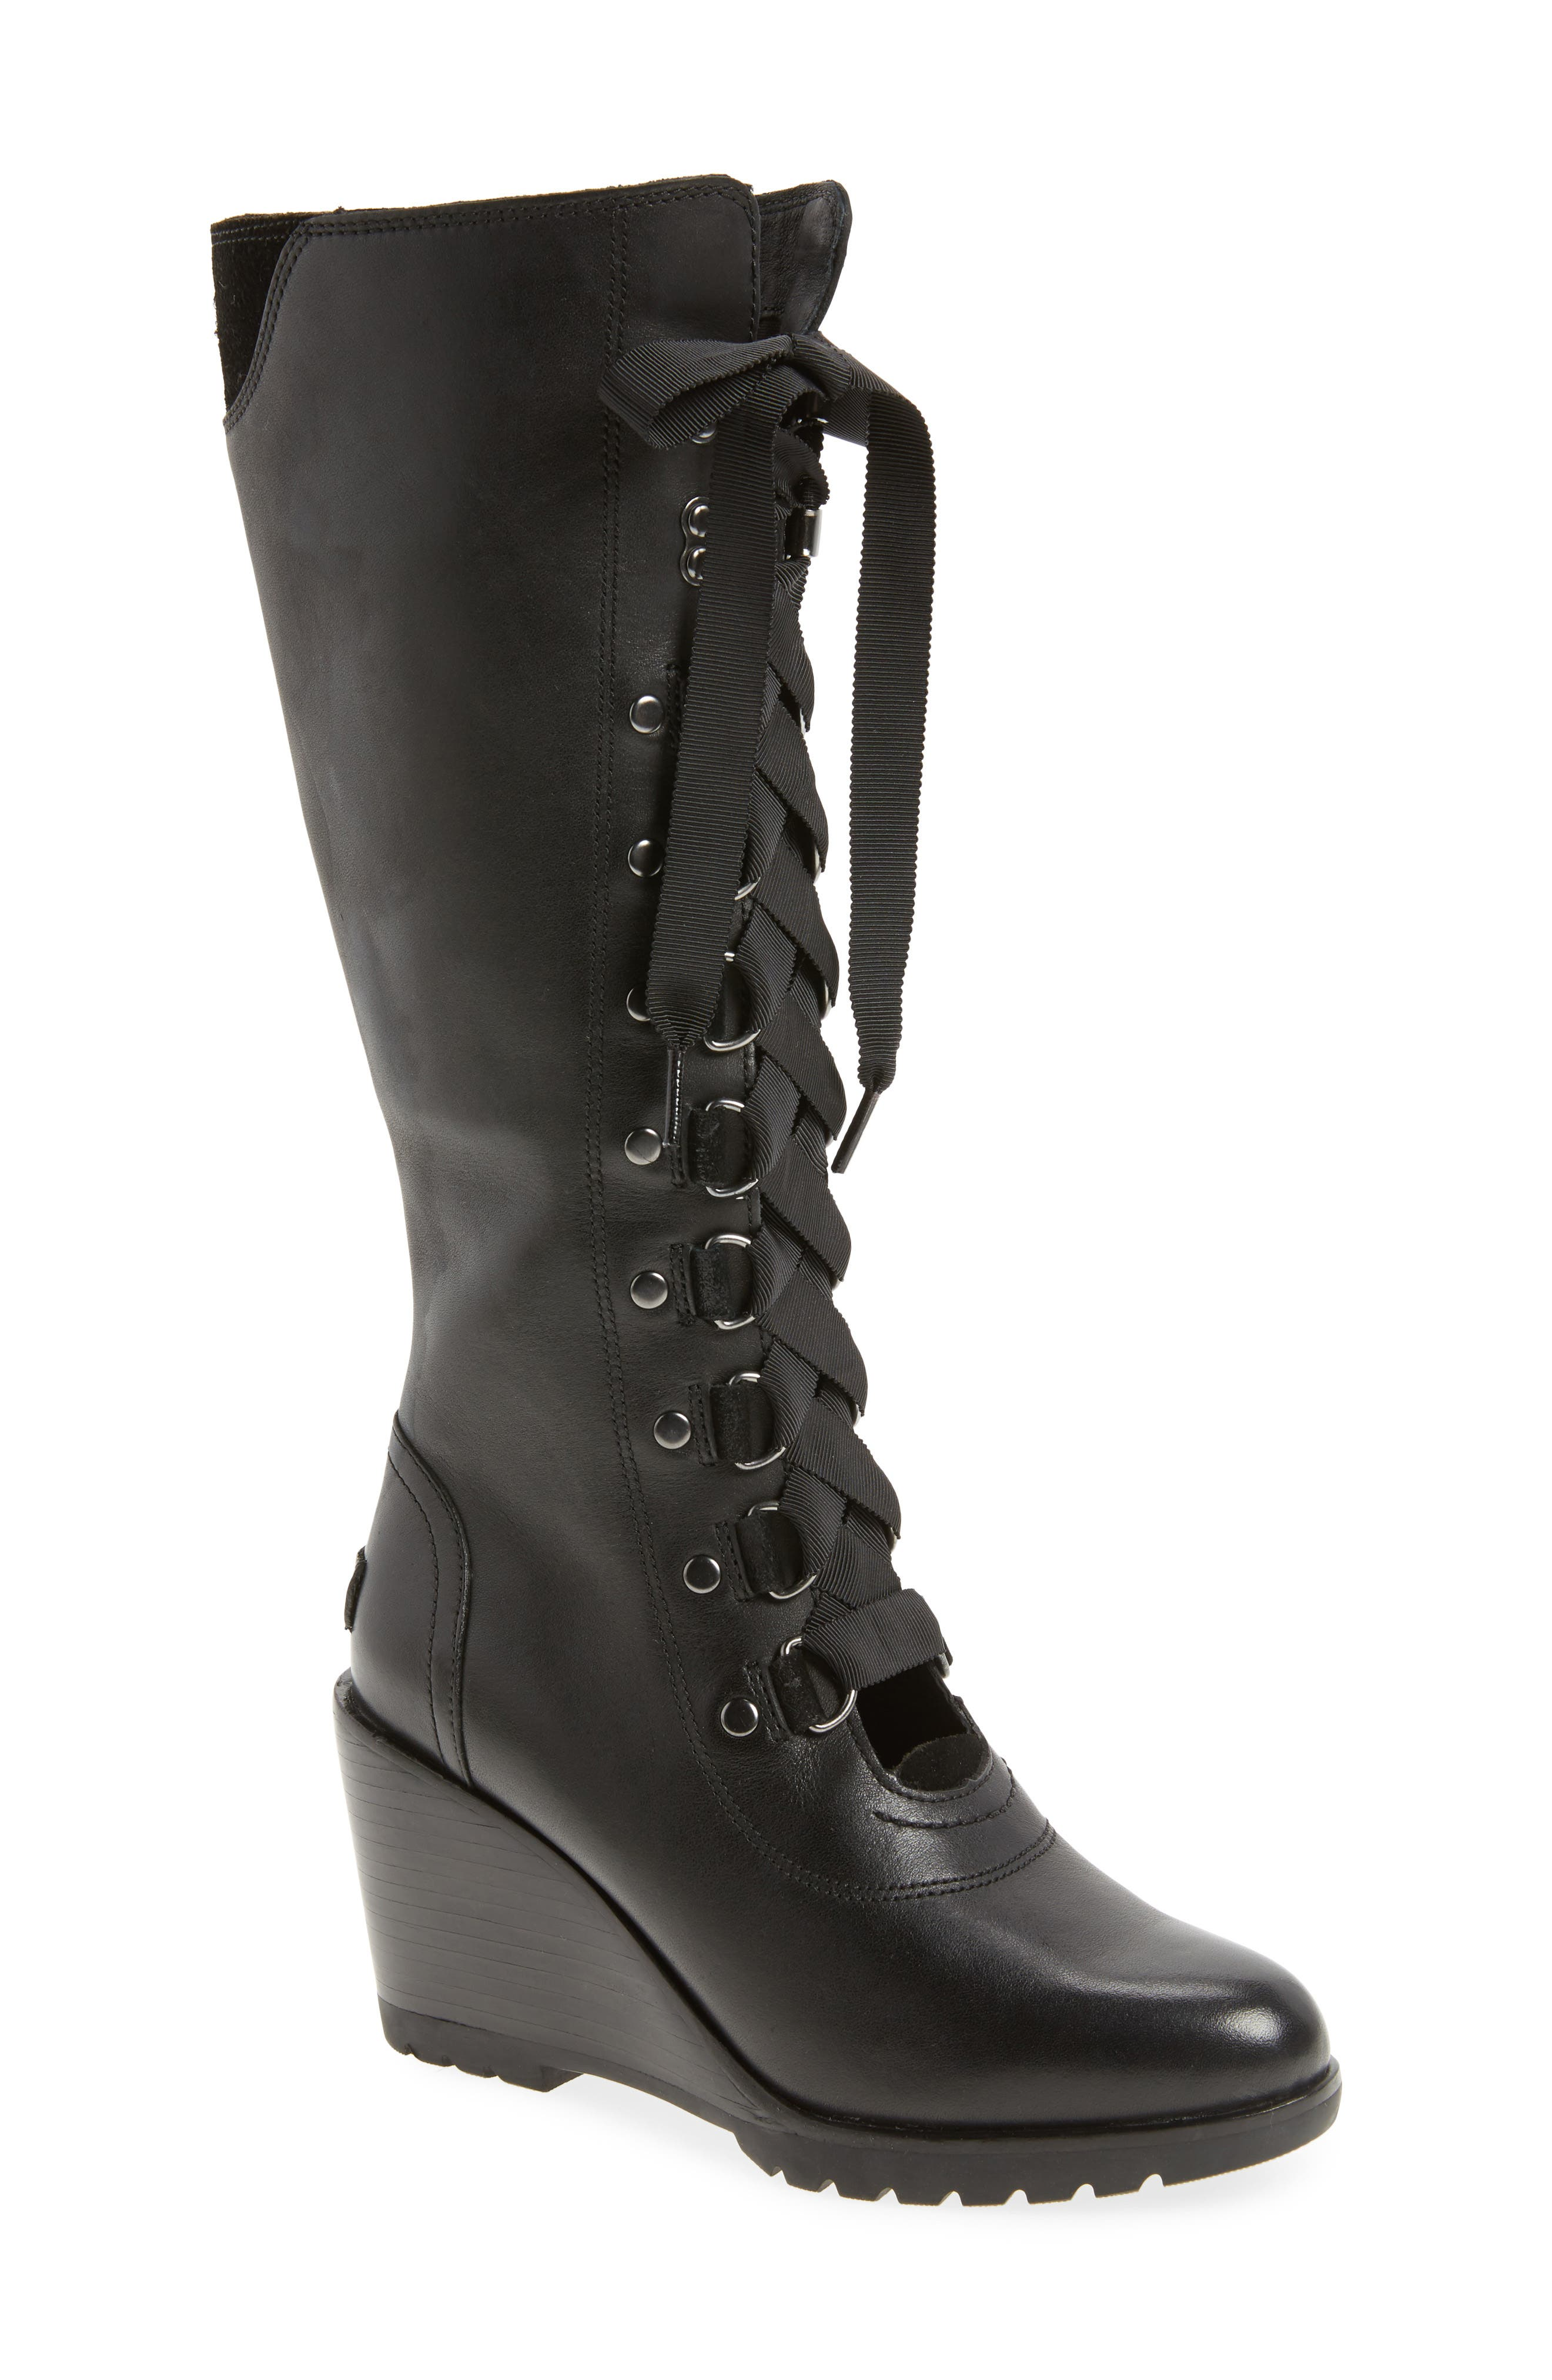 After Hours Lace Up Wedge Boot,                             Main thumbnail 1, color,                             010